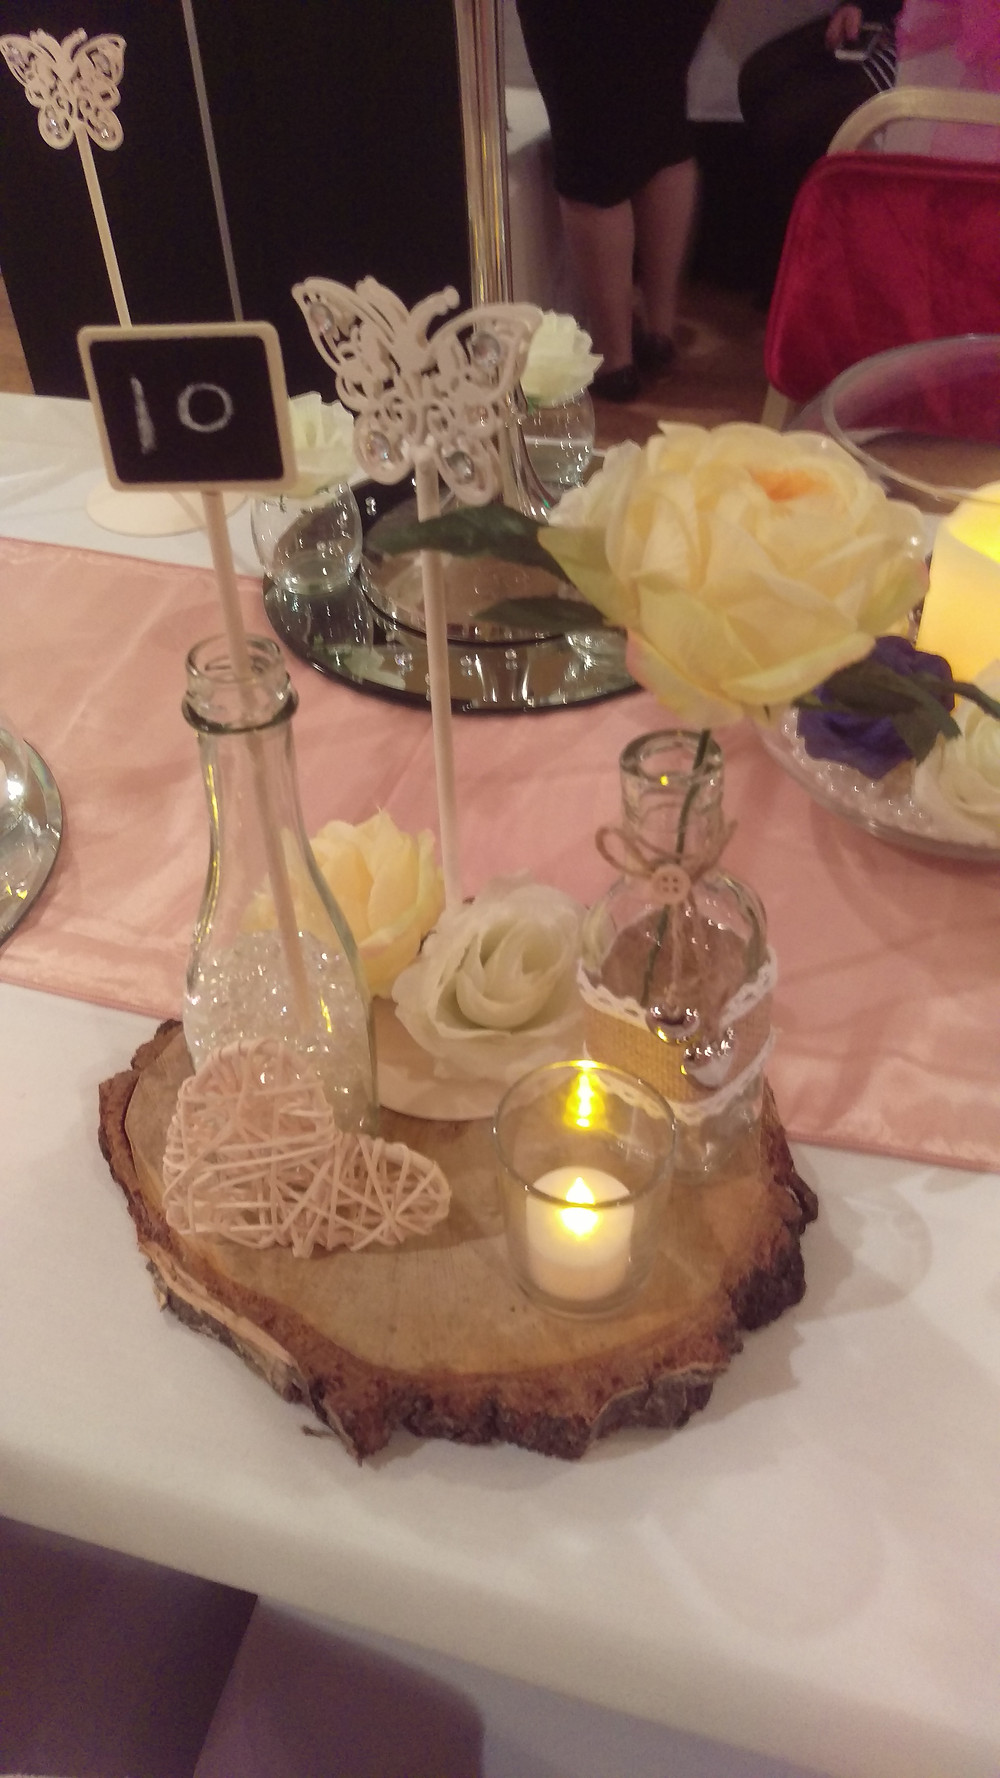 Rustic Wood Slice Centerpiece with Table Number, Rose, Wicker Love Heart, Glass Bottles Wedding Venue Table Decoration by Embellish Venue Styling Kent - www.embellishvenuestyling.uk